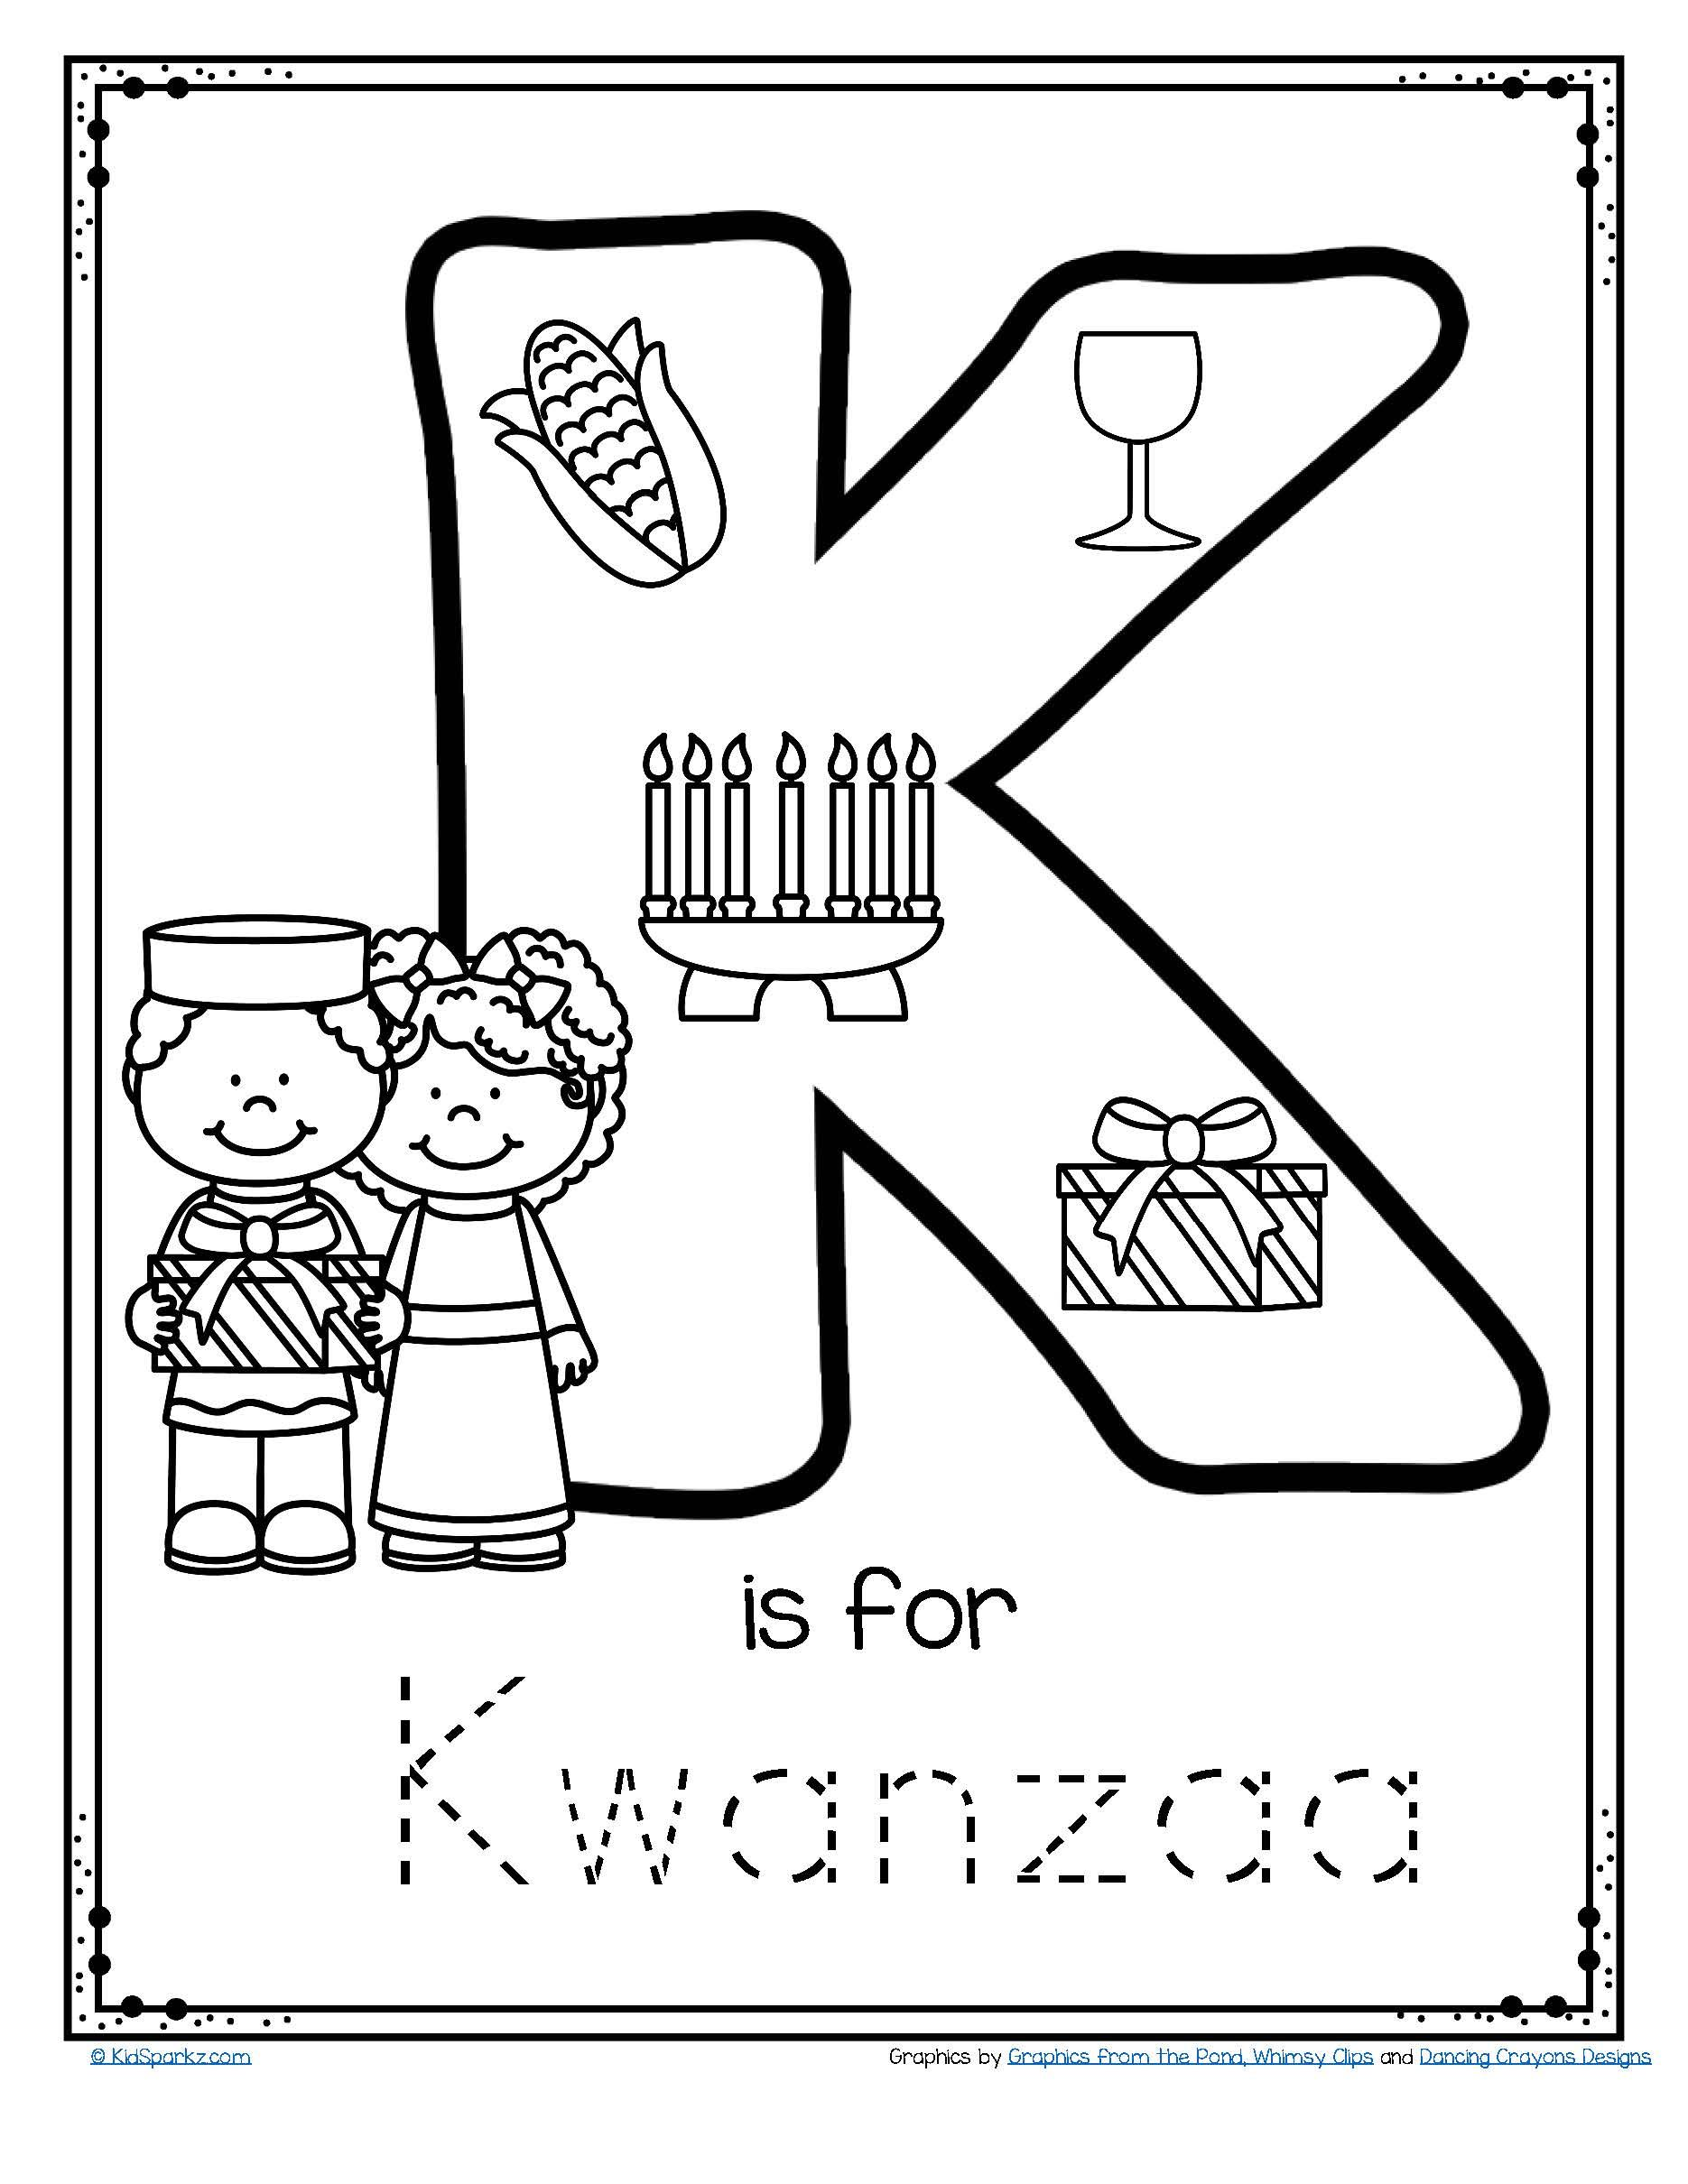 Free Printable Kwanzaa Worksheets - Learning How to Read